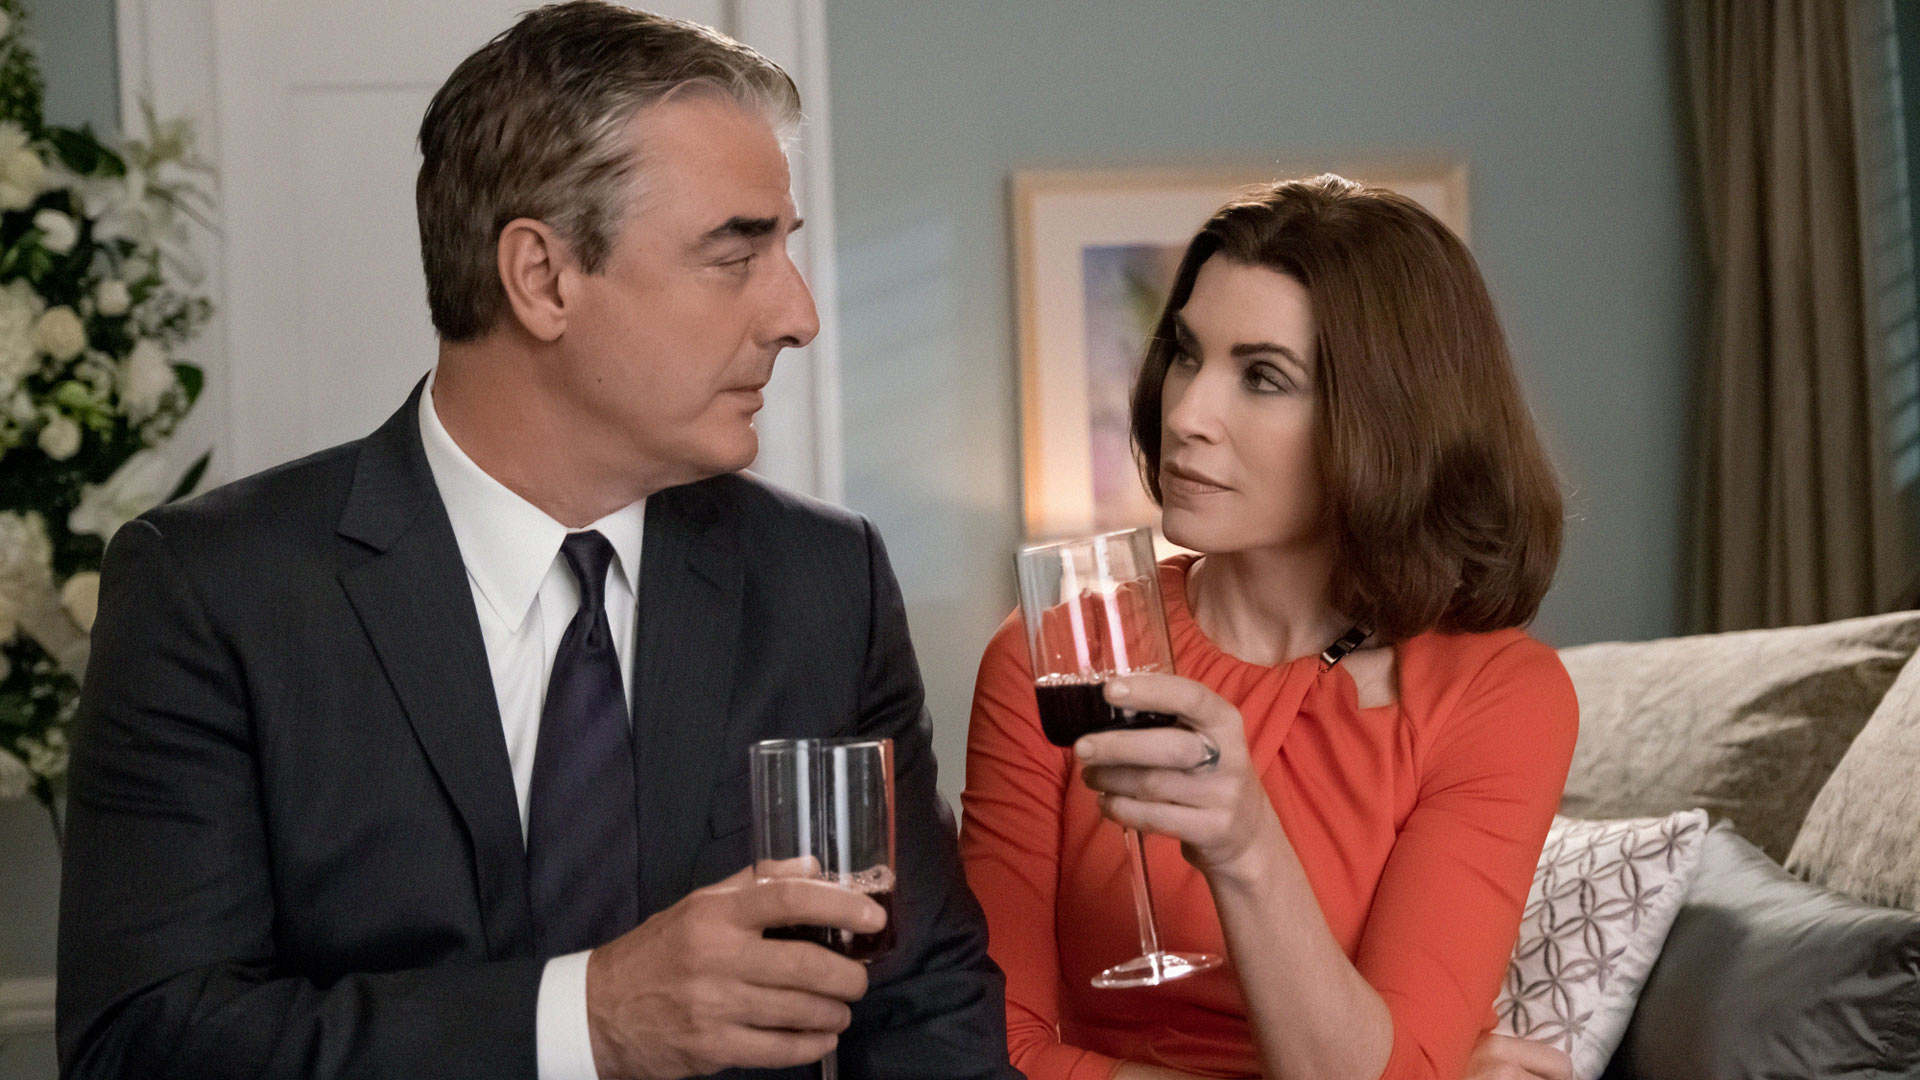 Alicia and Peter have a drink.